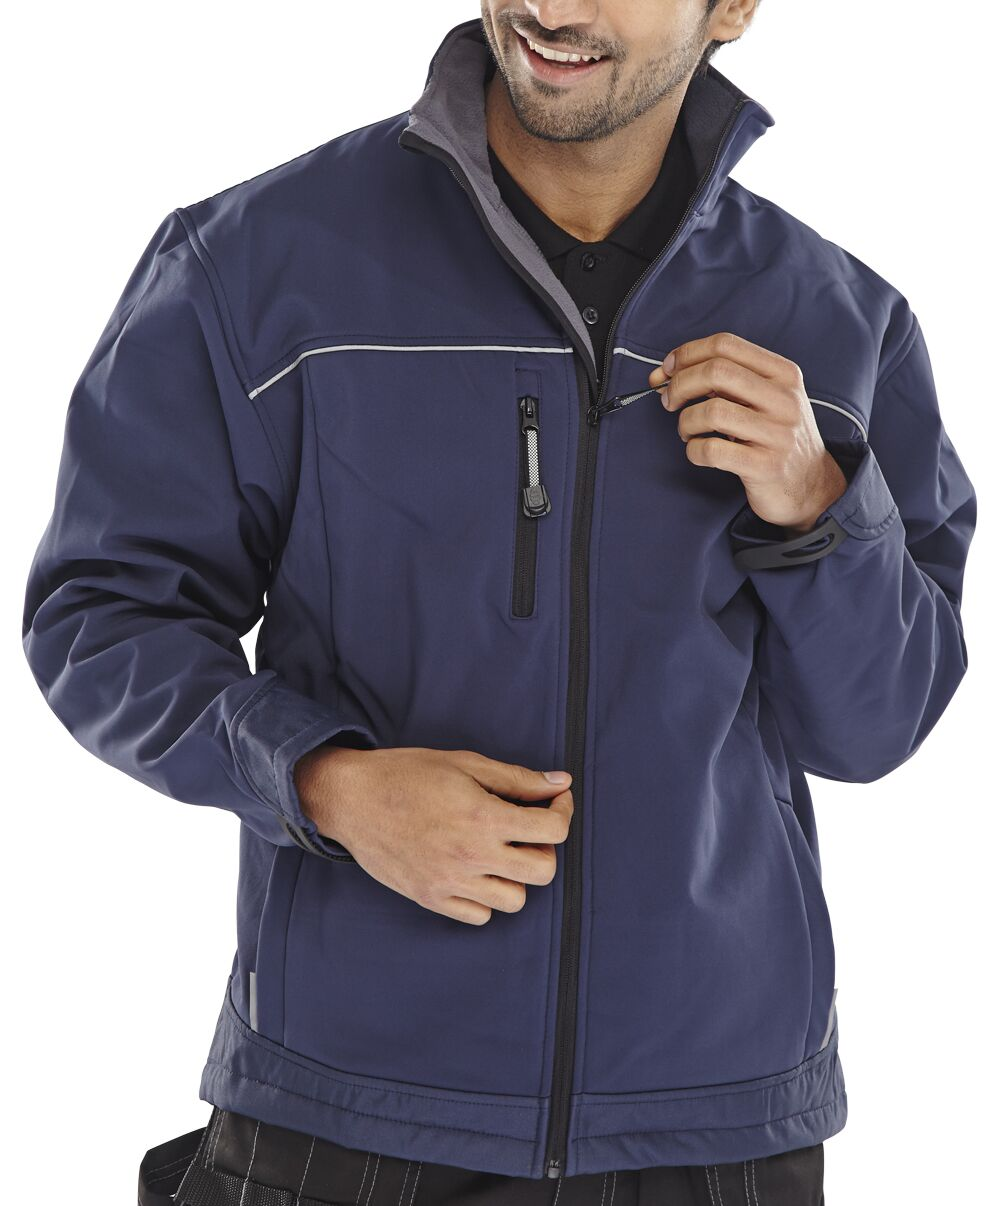 Click Workwear Soft Shell Jacket Water Resistant Windproof 3XL Navy Ref SSJNXXXL *Approx 3 Day Leadtime*